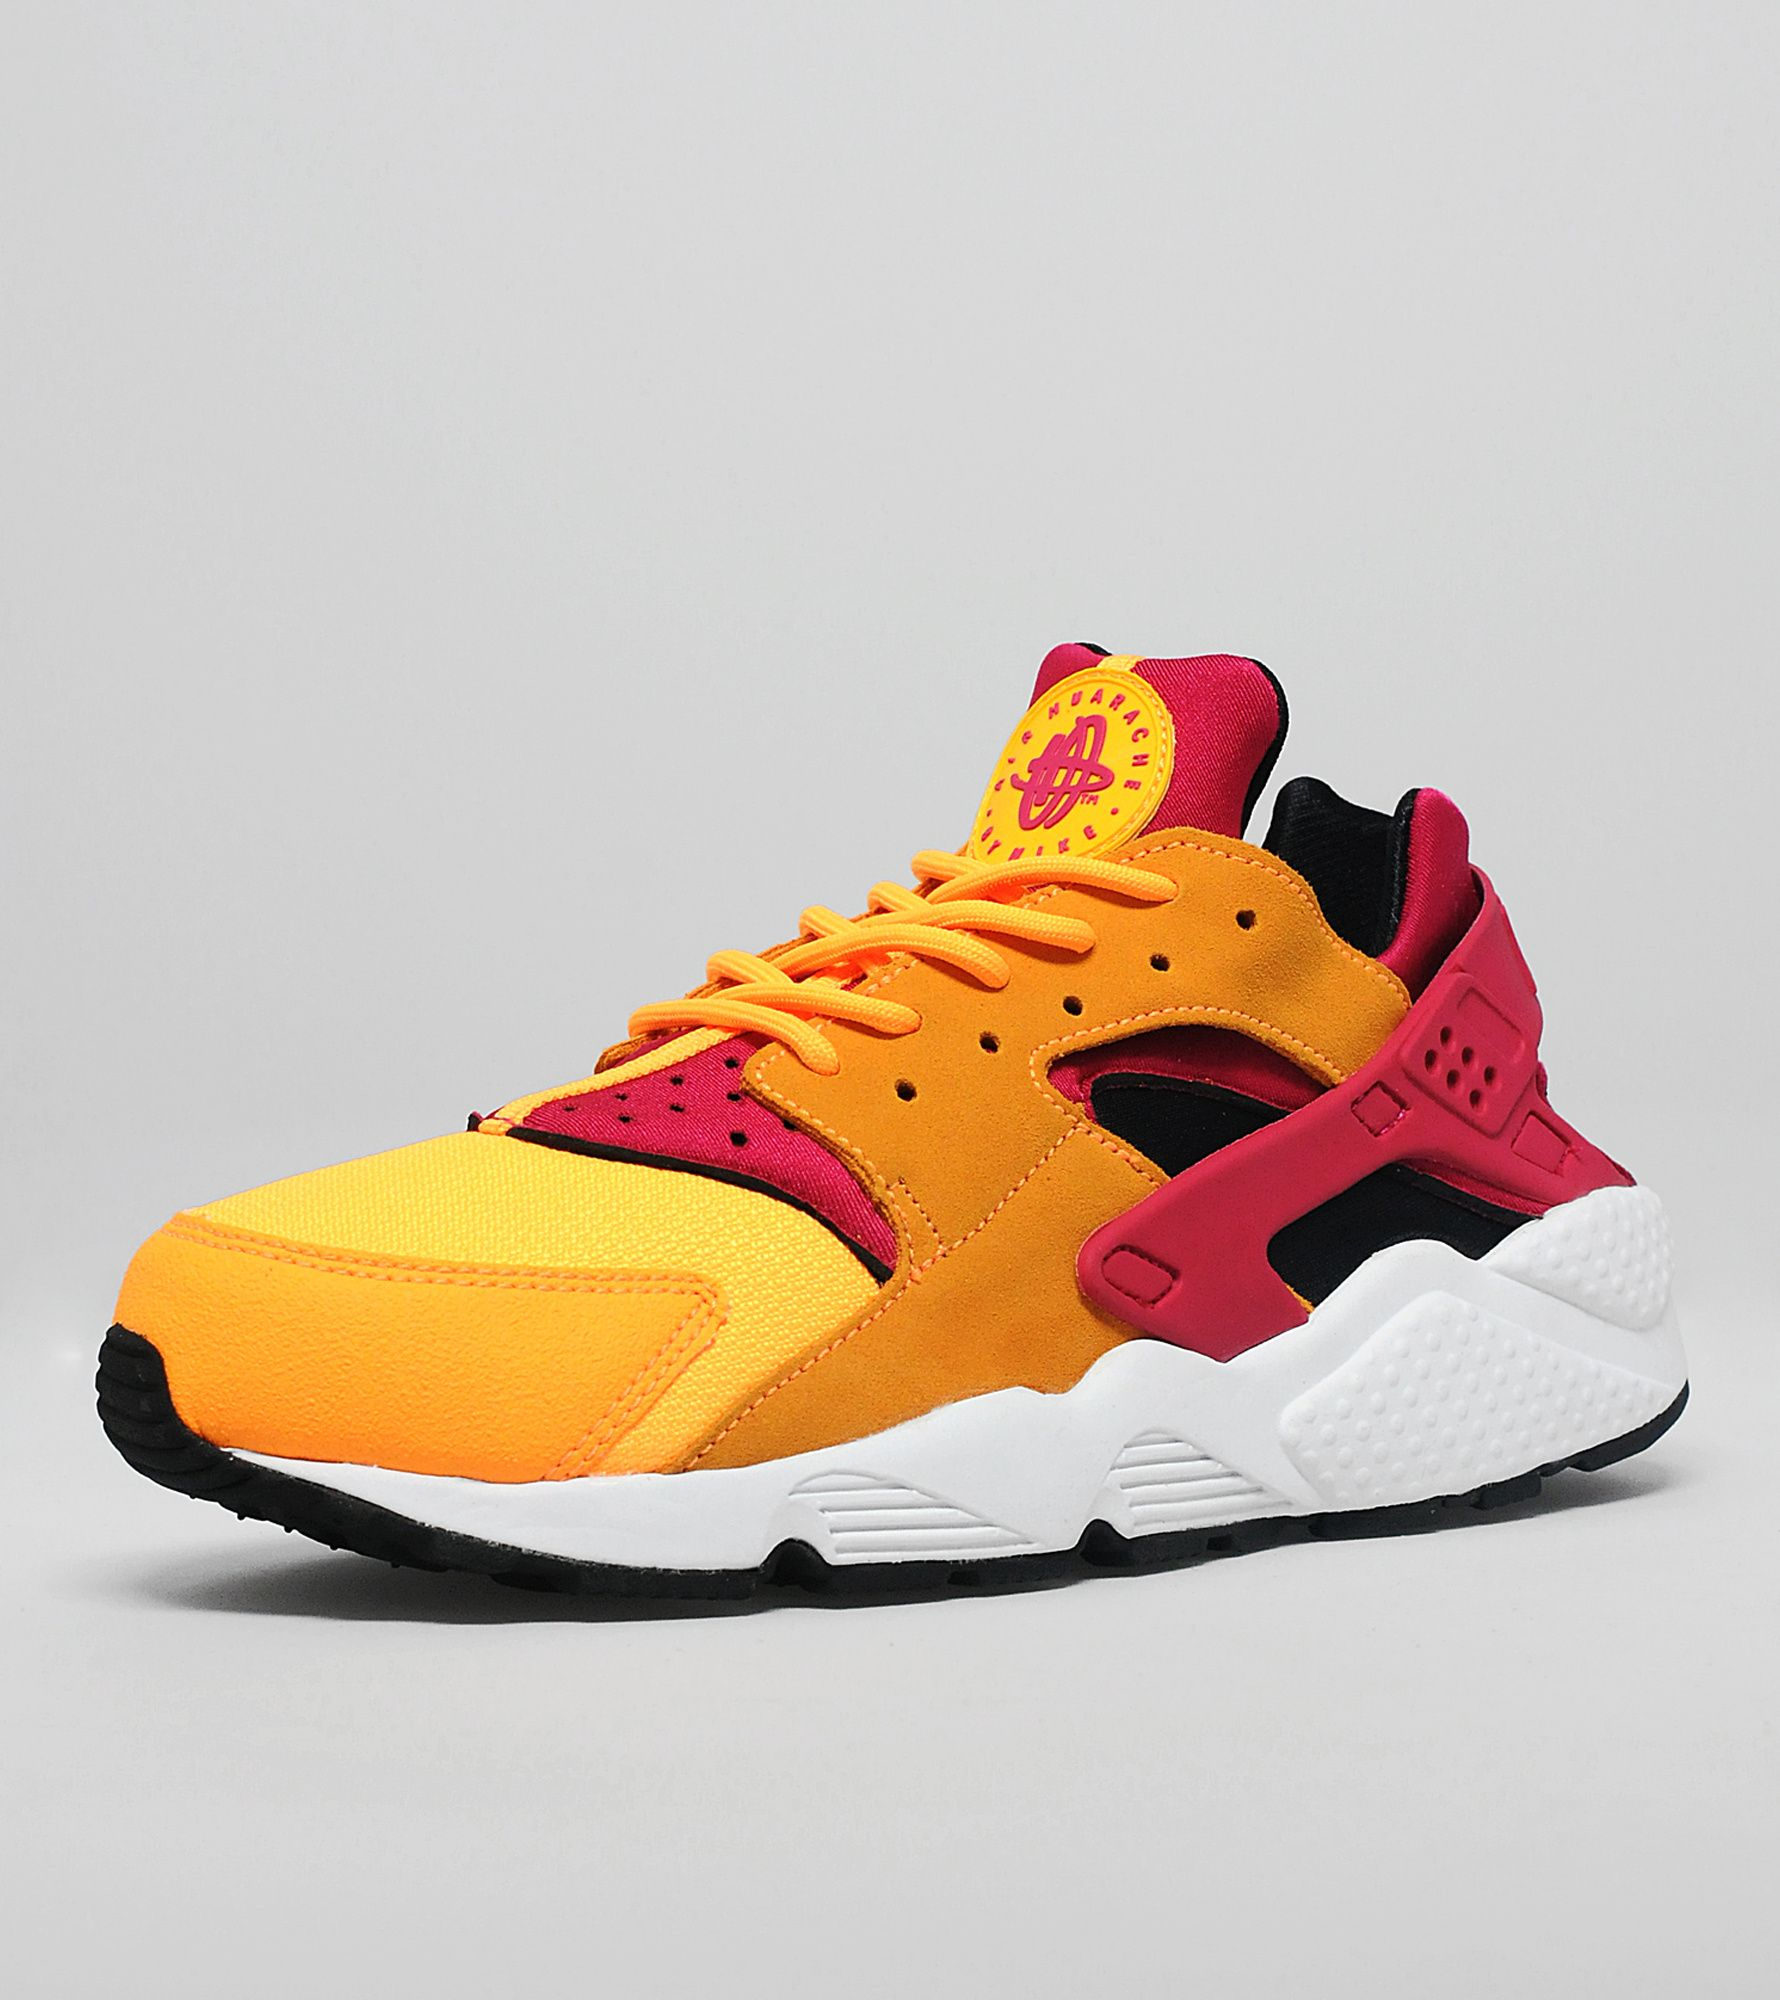 men's huarache shoes Show love for a 90s original that has stood the test of time with a pair of men's Huarache shoes. Designed by the prolific Tinker Hatfield, the Huarache burst onto the scene in and quickly gained popularity among Olympic athletes.